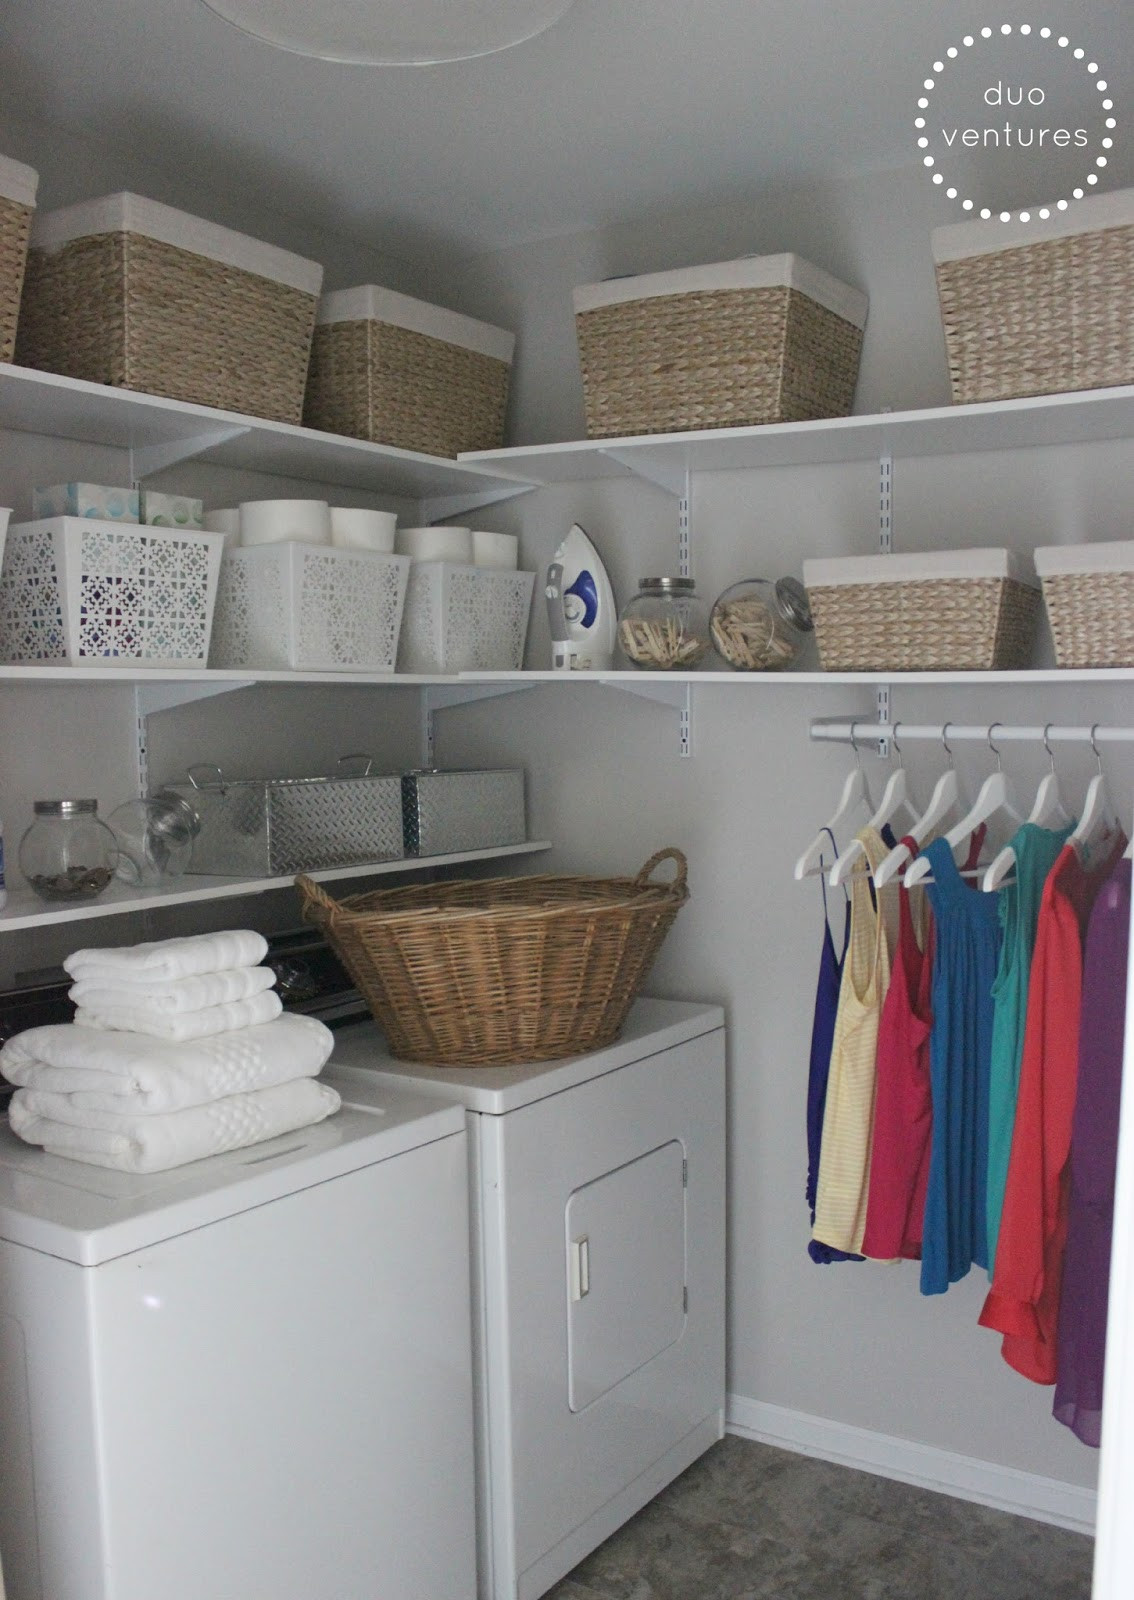 Best ideas about Laundry Room Shelf . Save or Pin Duo Ventures Laundry Room Makeover Now.